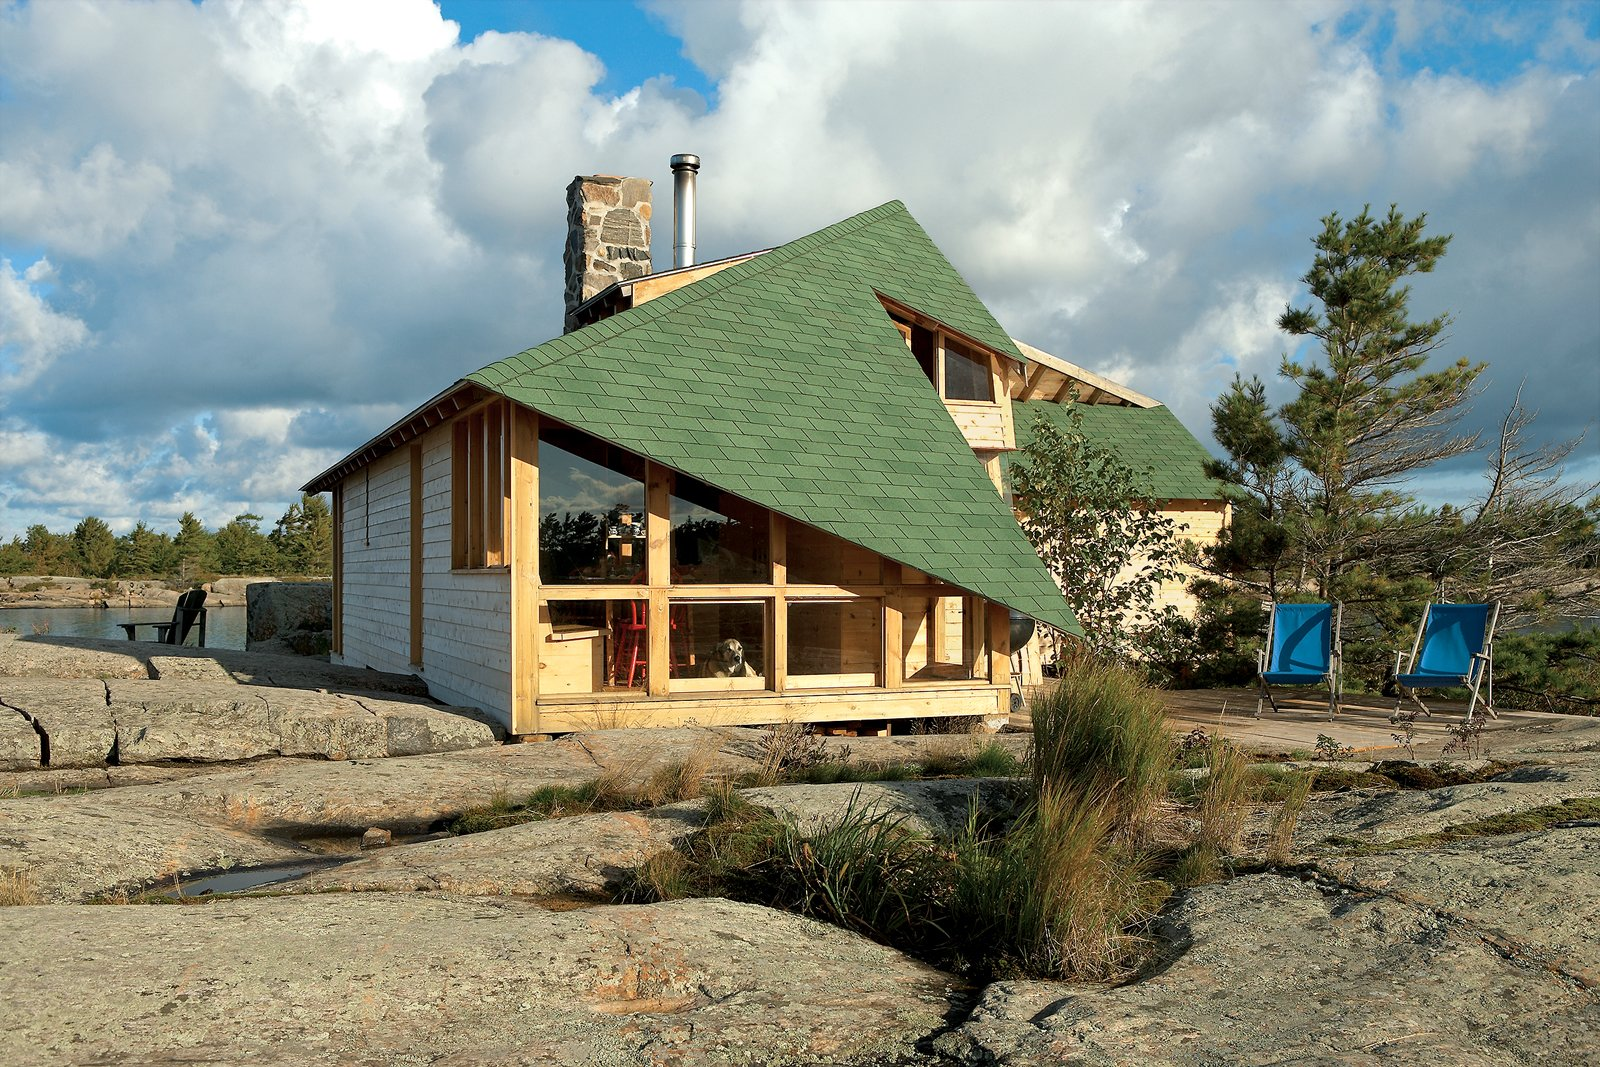 The winglike dips in the roofline situate and hold the house against the region's brutal winds. As the outdoor chairs attest, lifestyles here pass easily between inside and out; a long hike and a good swim are always just steps away Tagged: Exterior, Cabin Building Type, Shingles Roof Material, and Wood Siding Material.  Roofs by Aileen Kwun from On the Rock